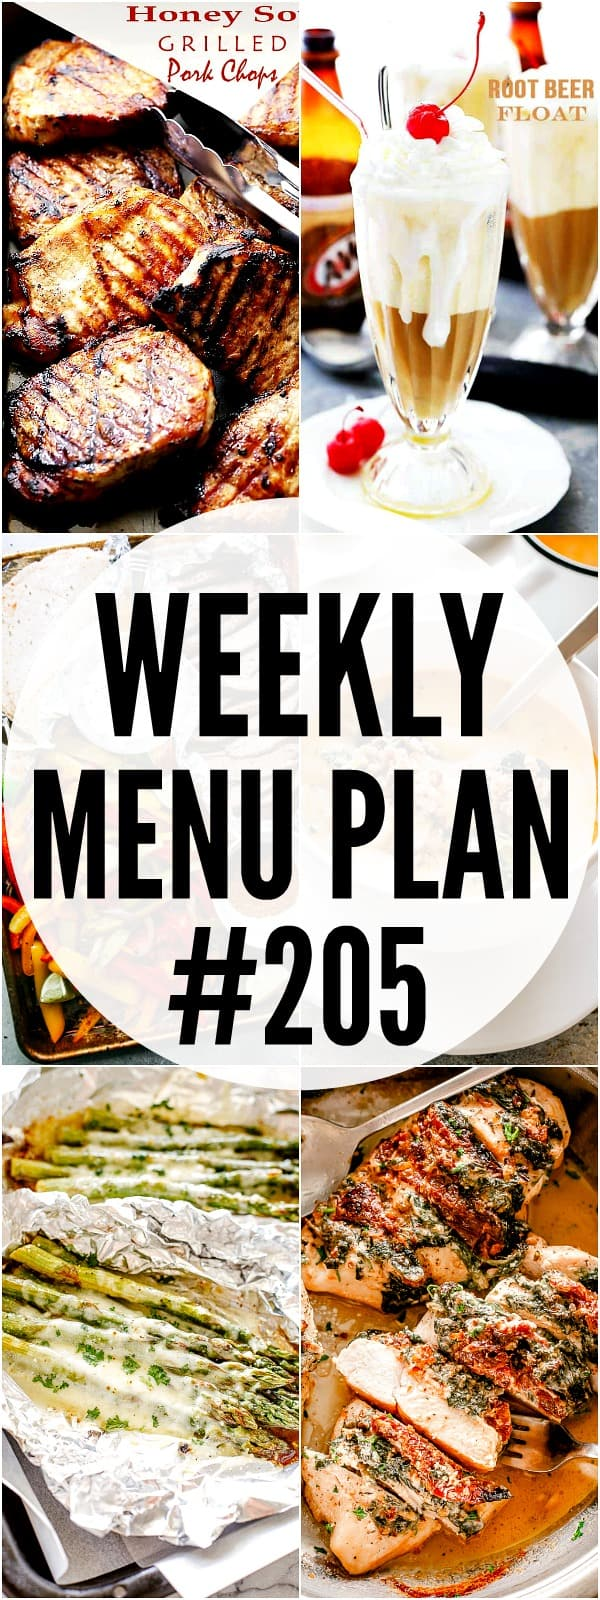 Menu Plan 205 Pin Image